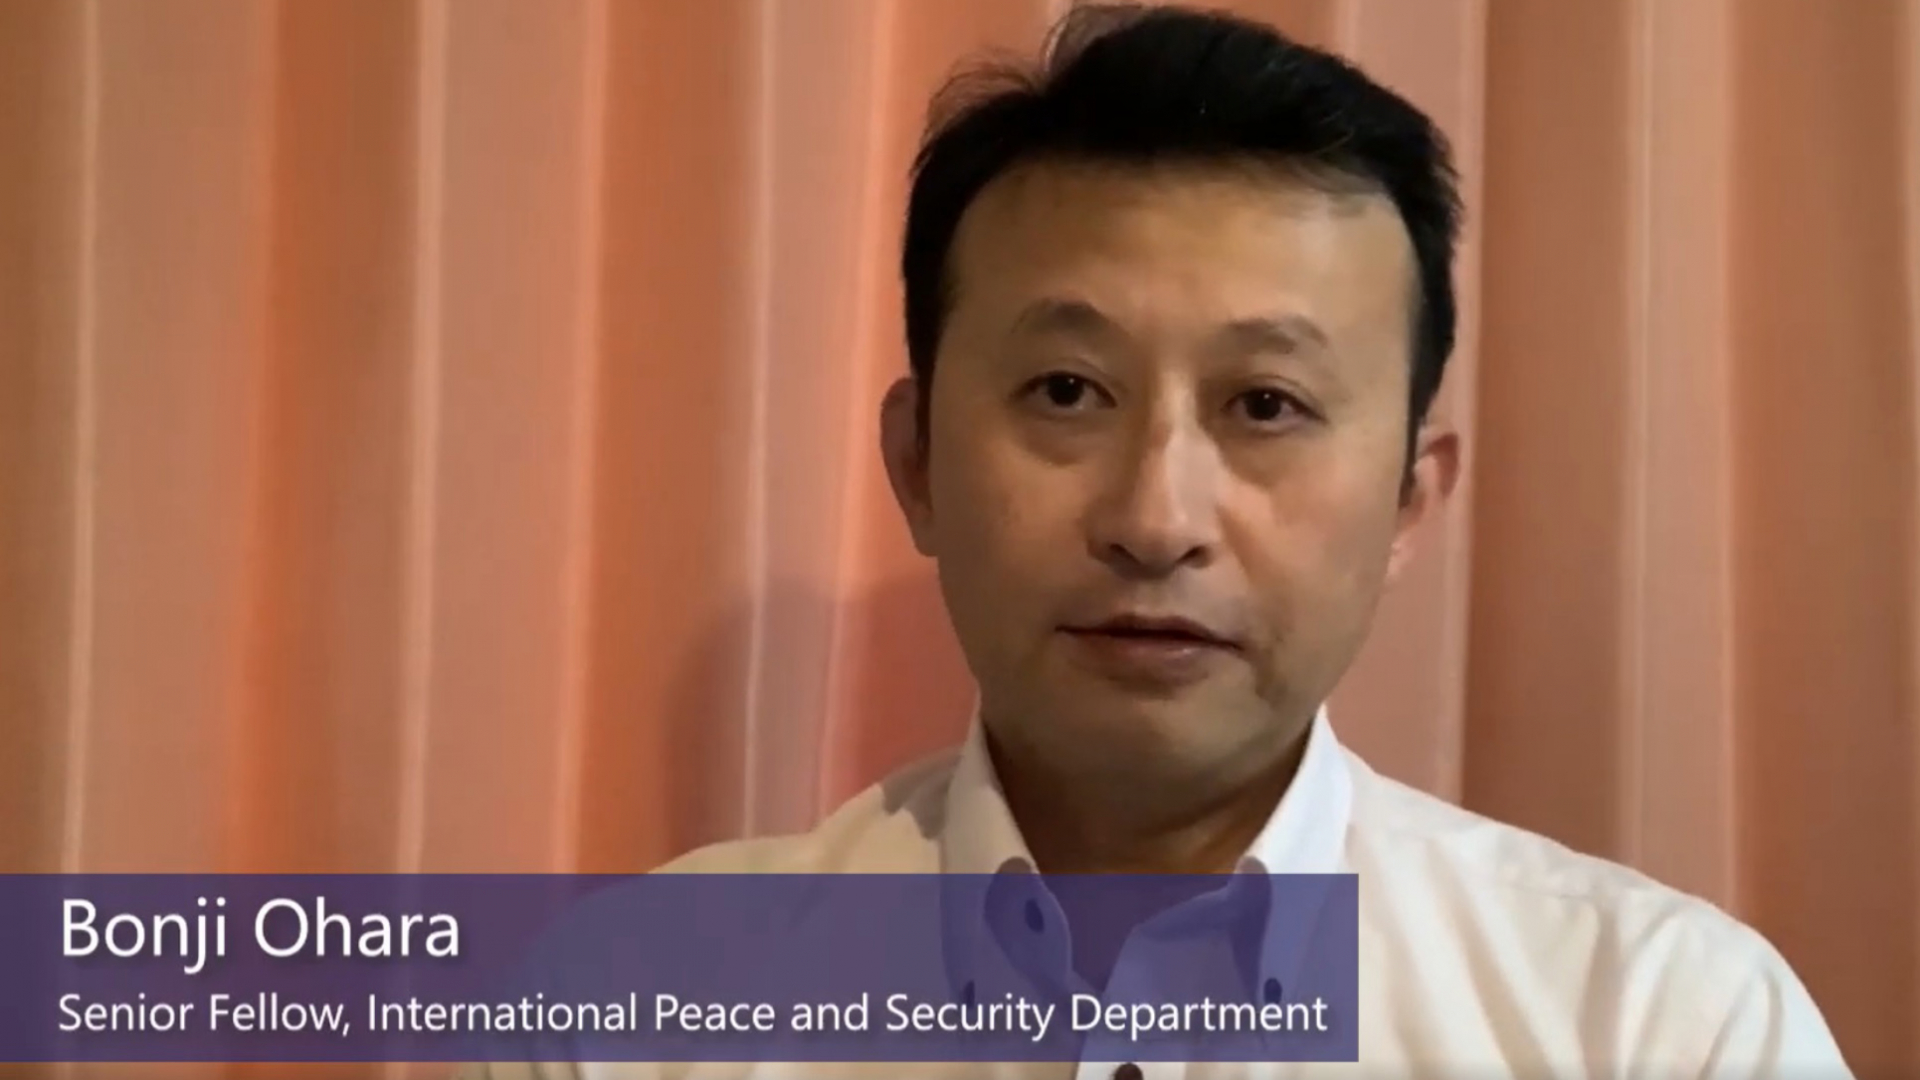 Changes to the global order during the COVID-19 pandemic: Interview with SPF Senior Fellow Bonji Ohara